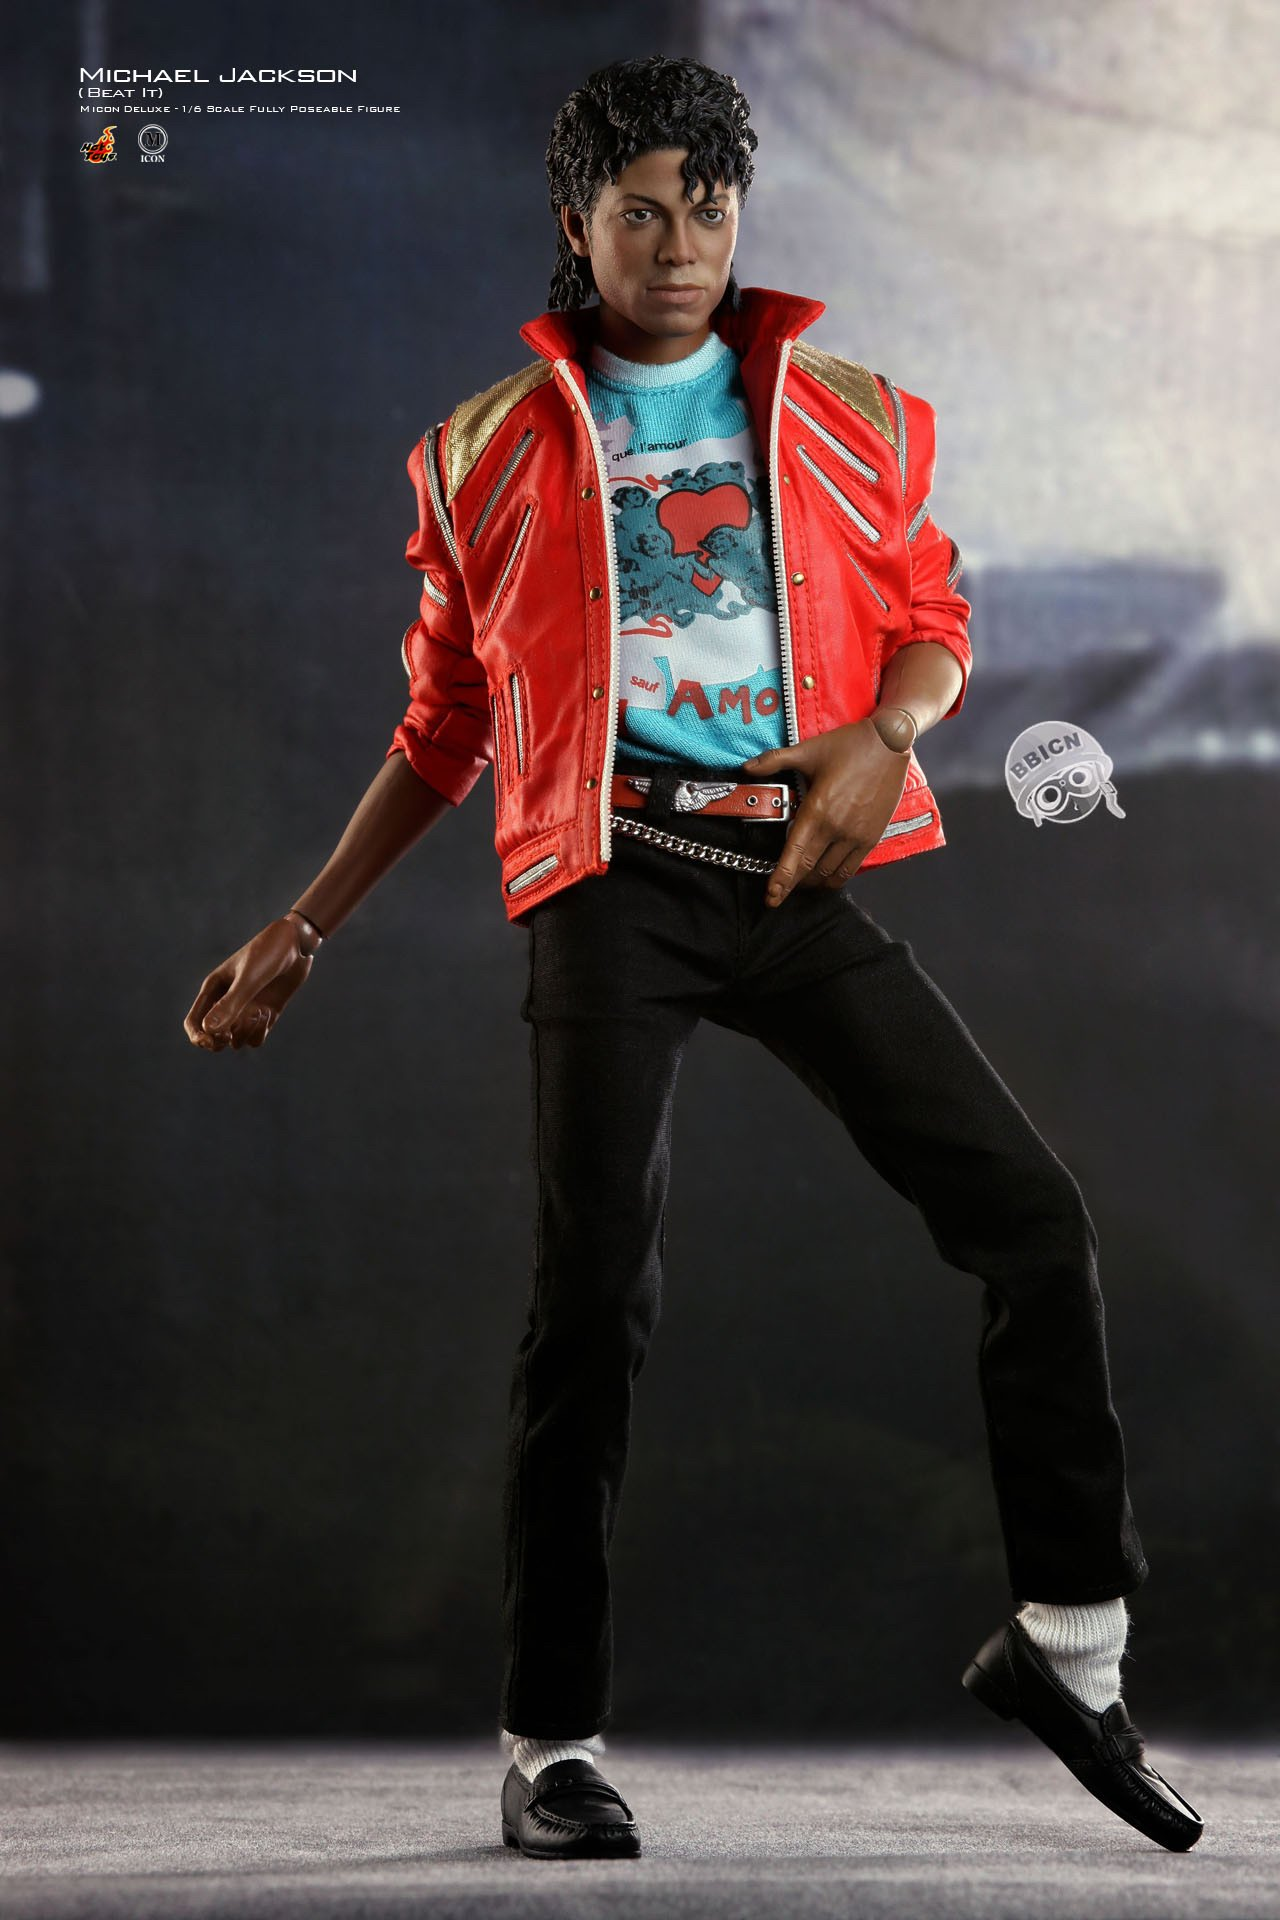 [NUOVE FOTO] Nuova Action Figure di Beat It - Pagina 2 094216r228j6juqozc8gko